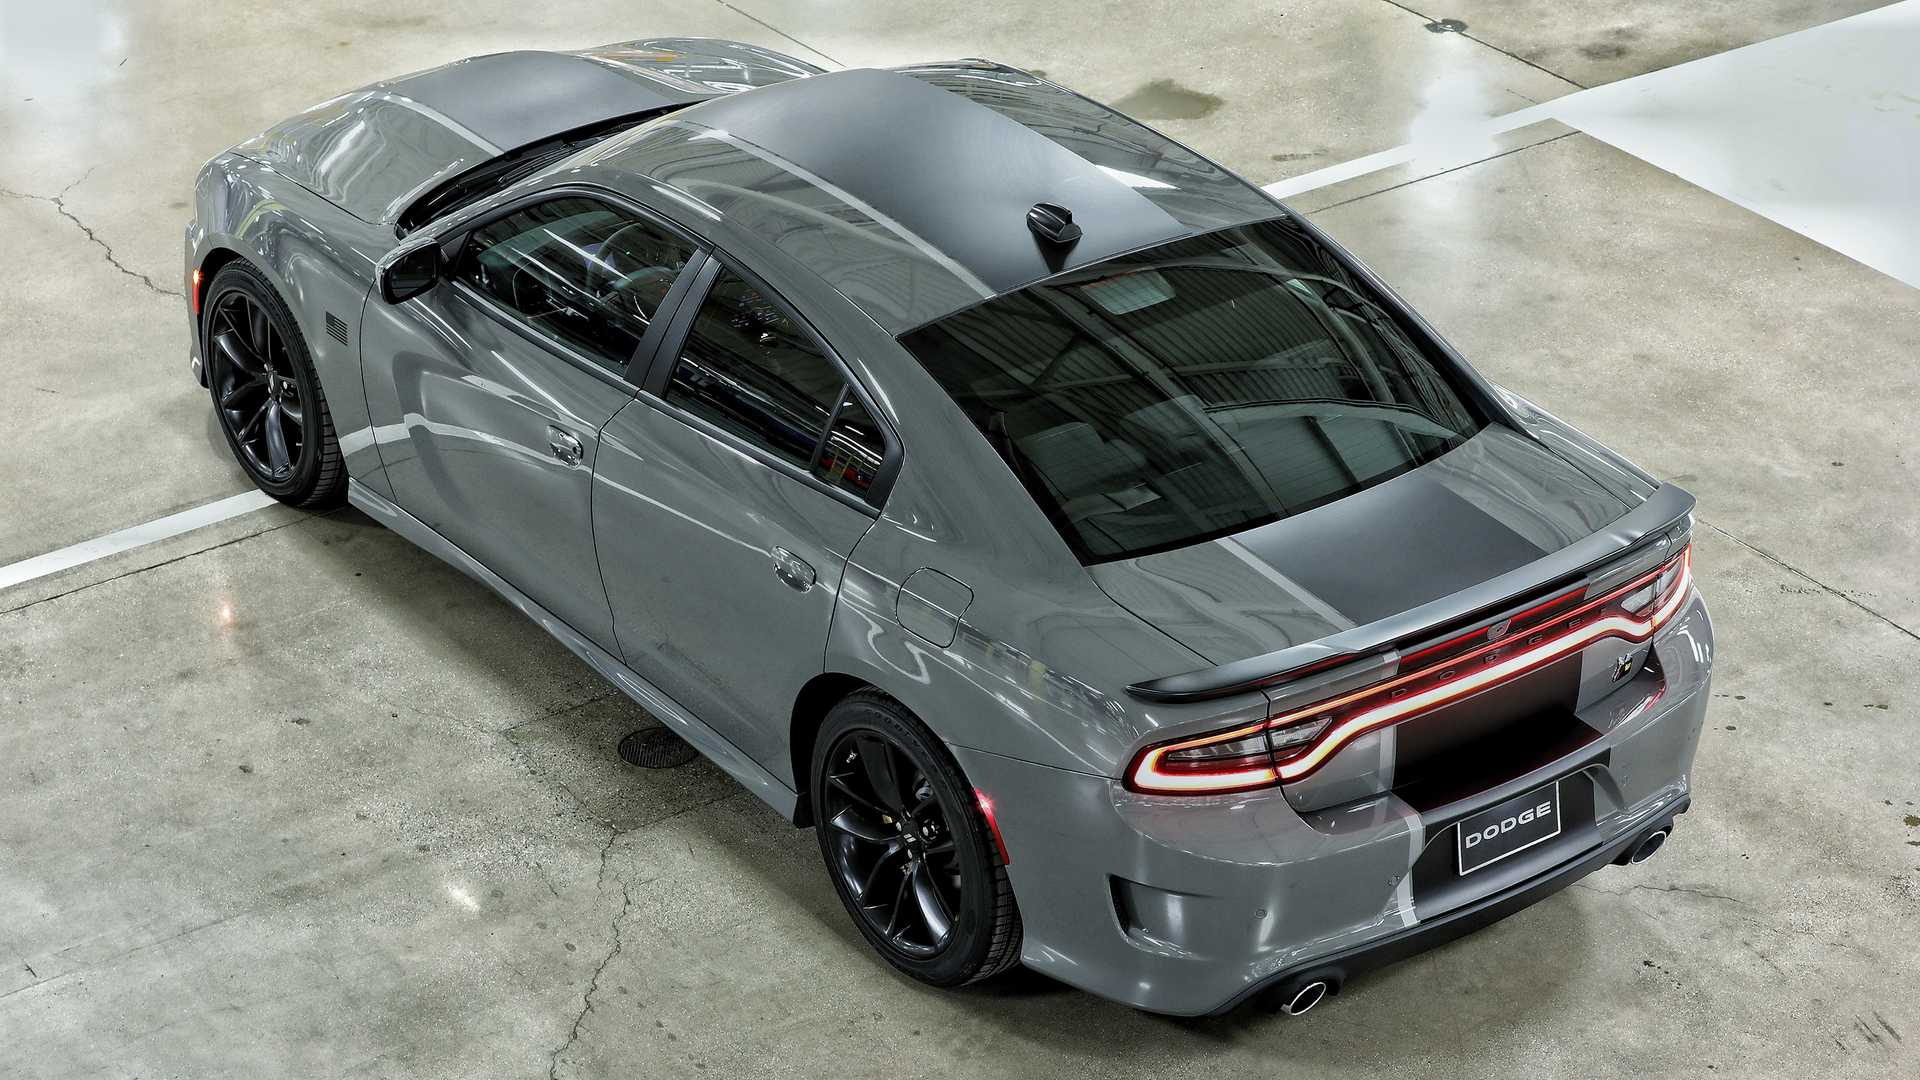 Stars Amp Stripes Edition Military Themed Dodge Charger